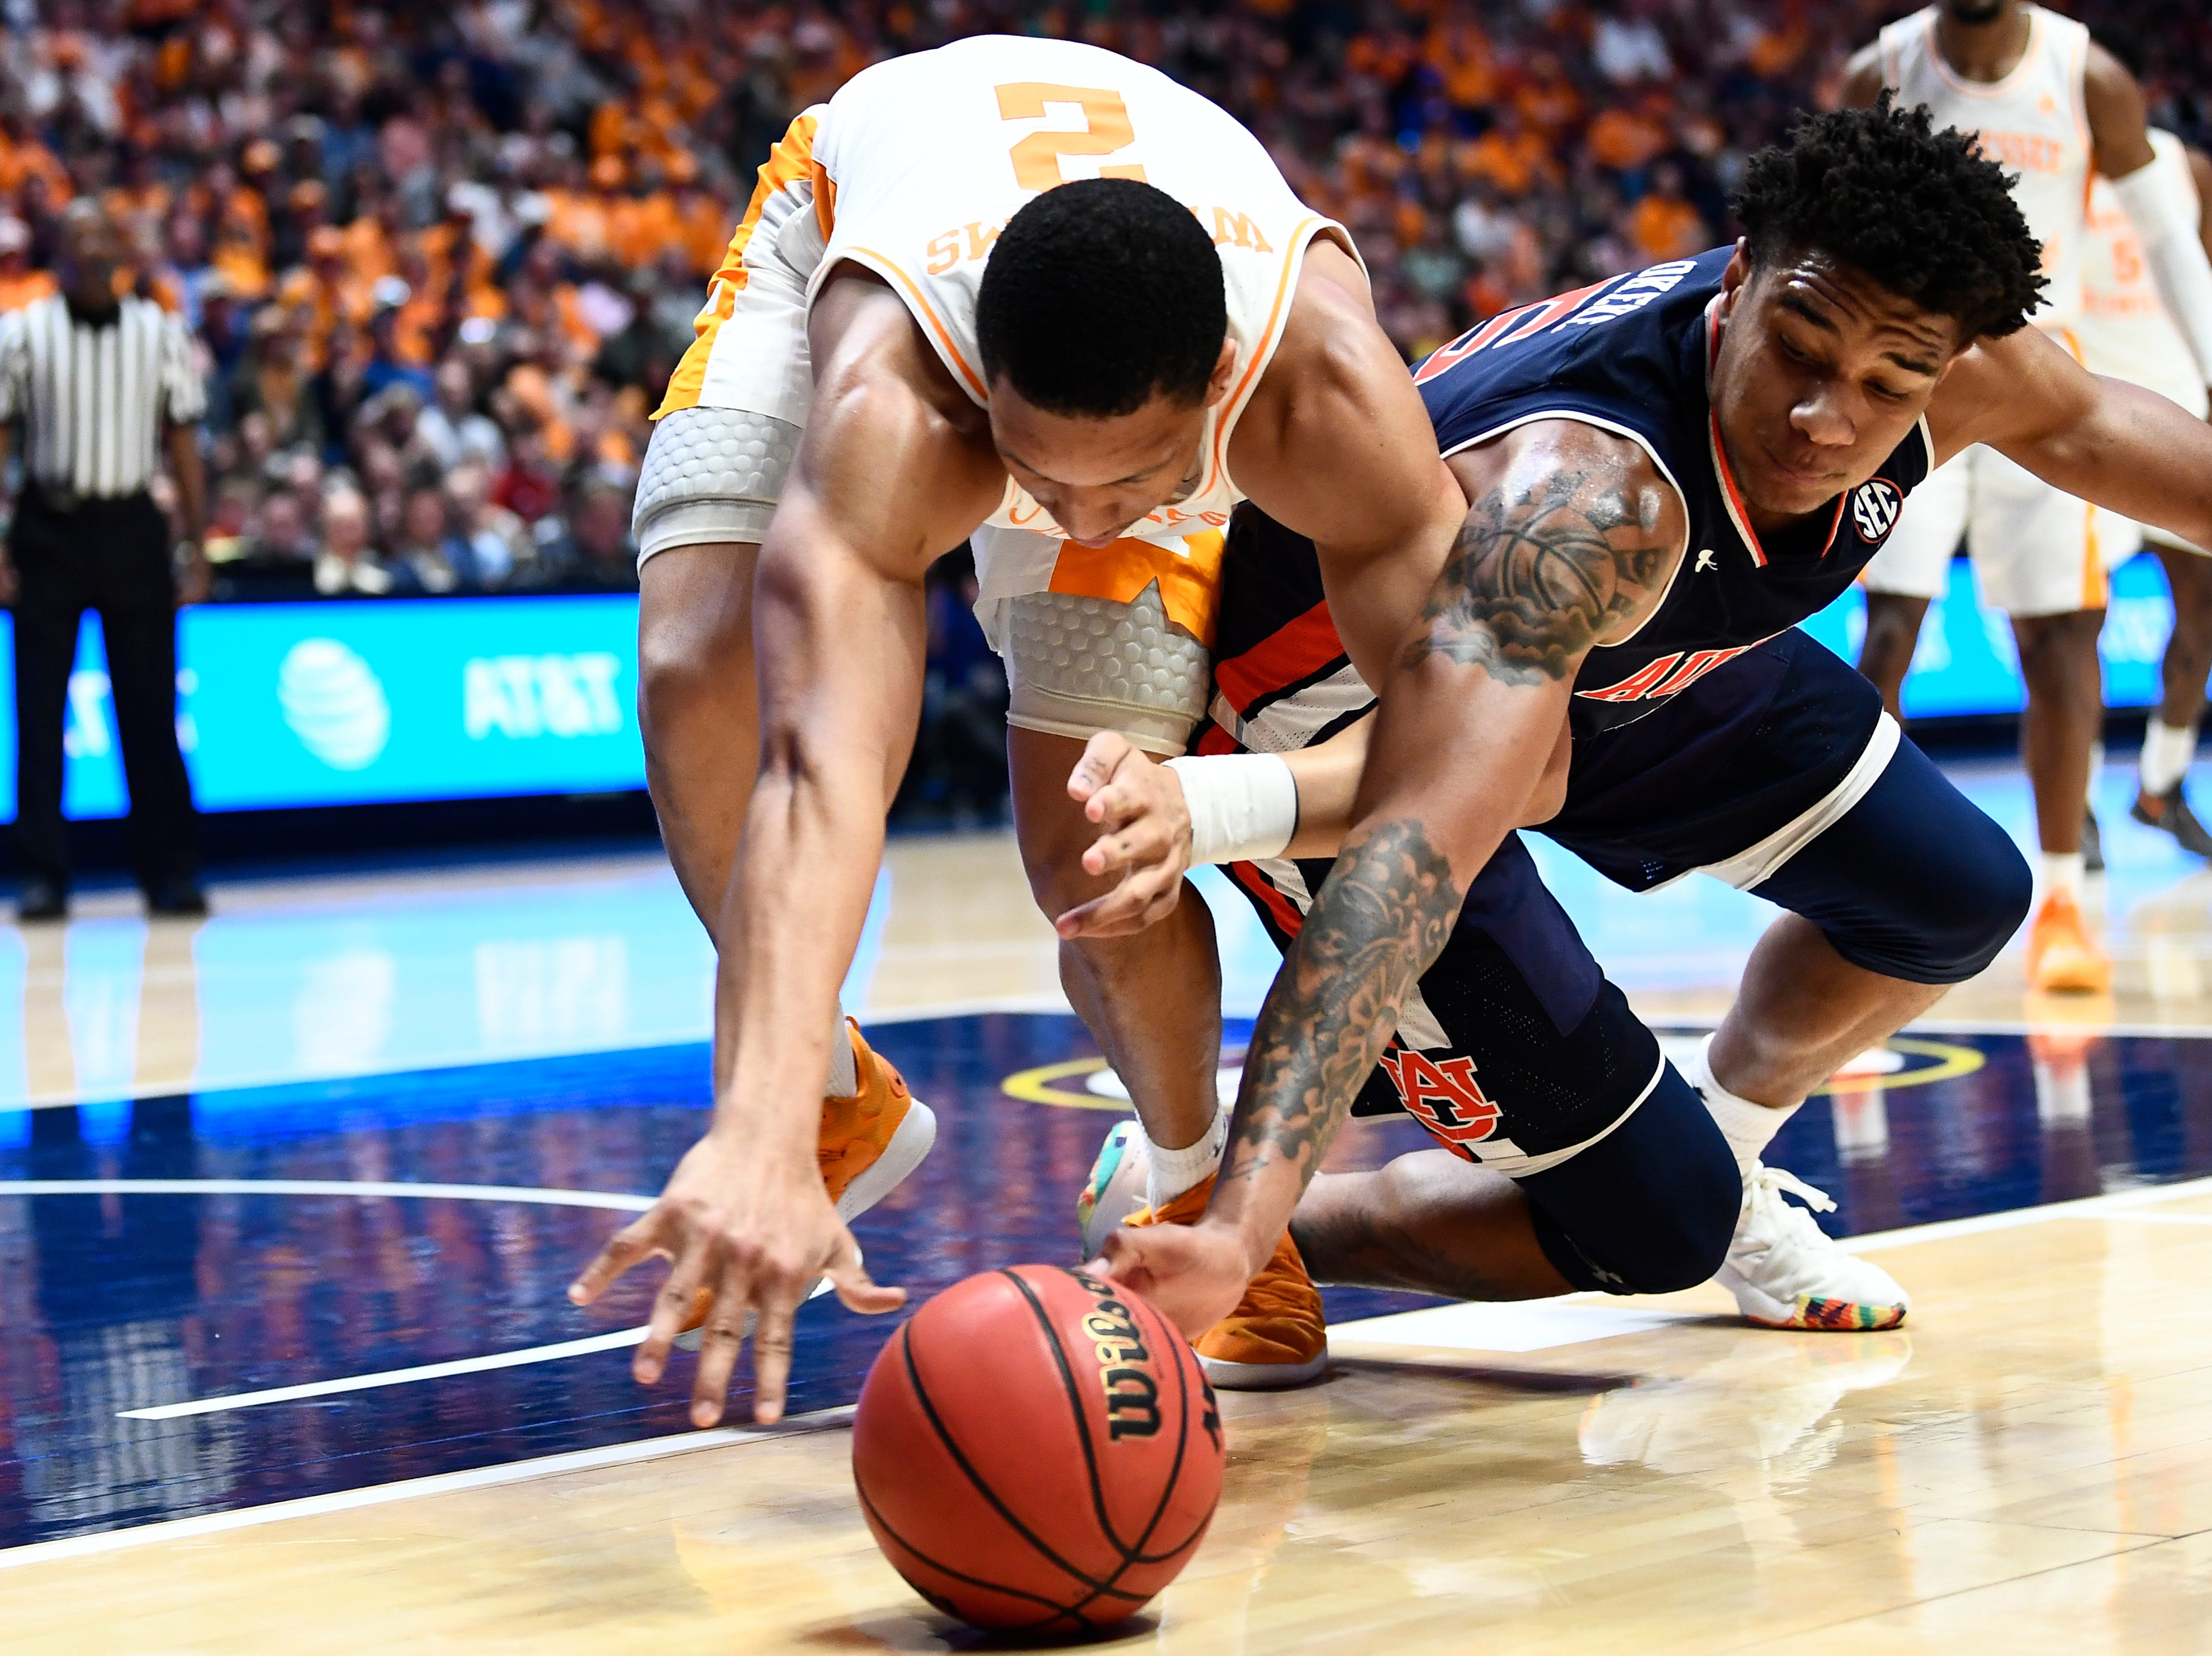 Tennessee forward Grant Williams (2) and Auburn forward Chuma Okeke (5) dive for the ball during the second half of the SEC Men's Basketball Tournament championship game at Bridgestone Arena in Nashville, Tenn., Sunday, March 17, 2019.